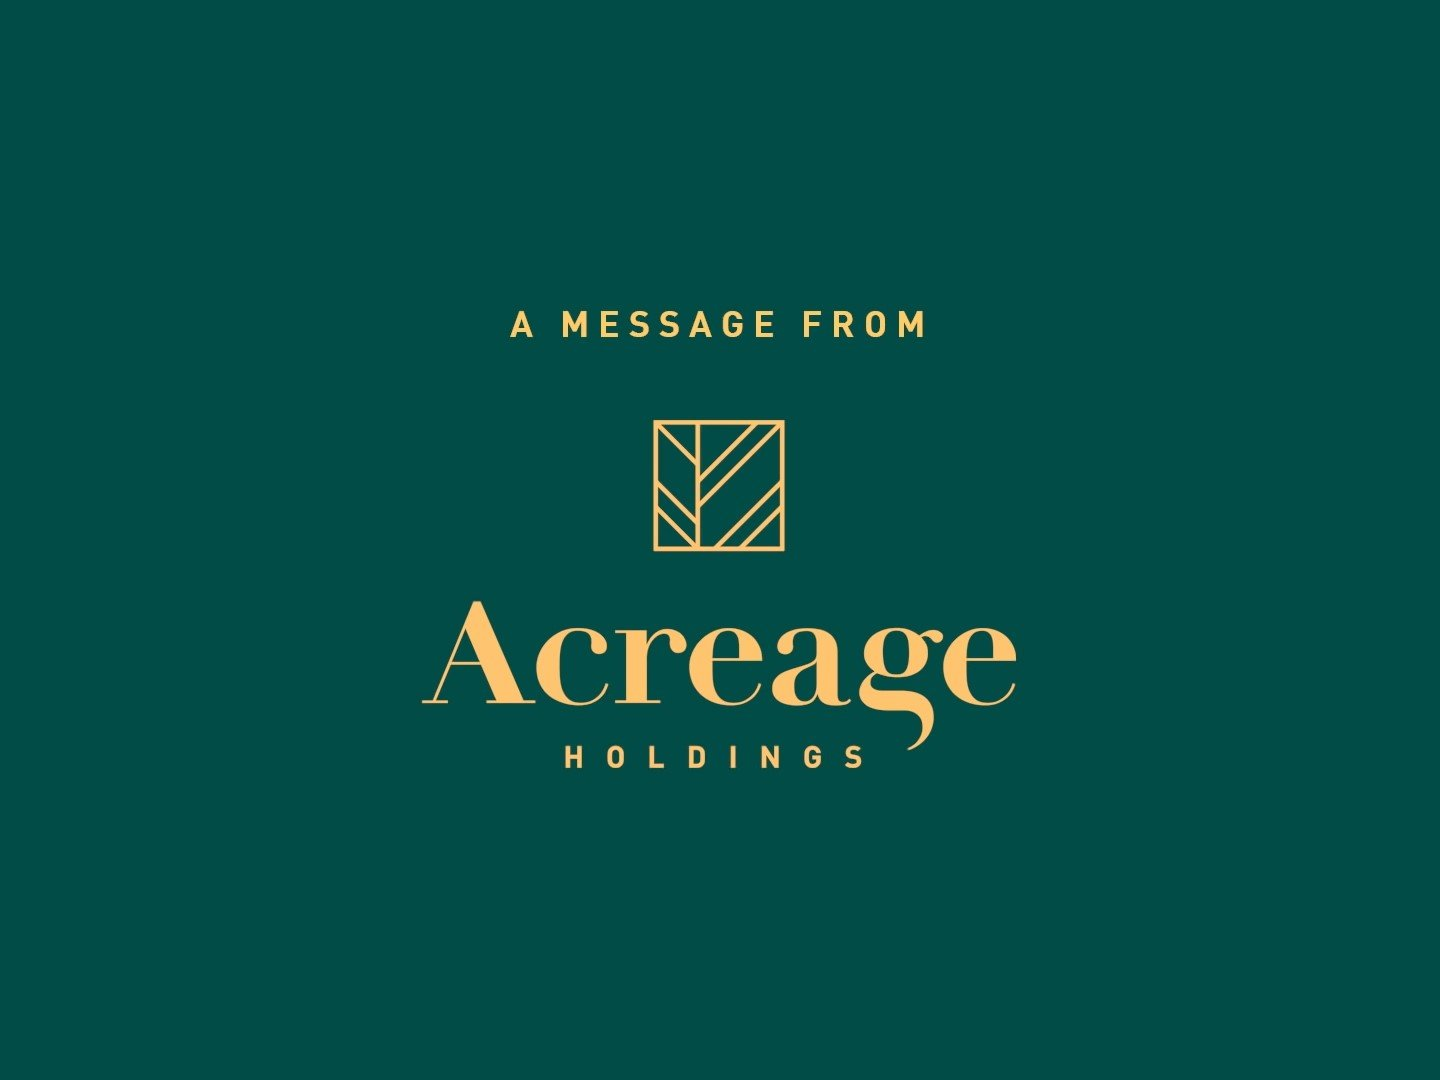 """Acreage Holdings: """"The Time Is Now"""" Super Bowl PSA"""